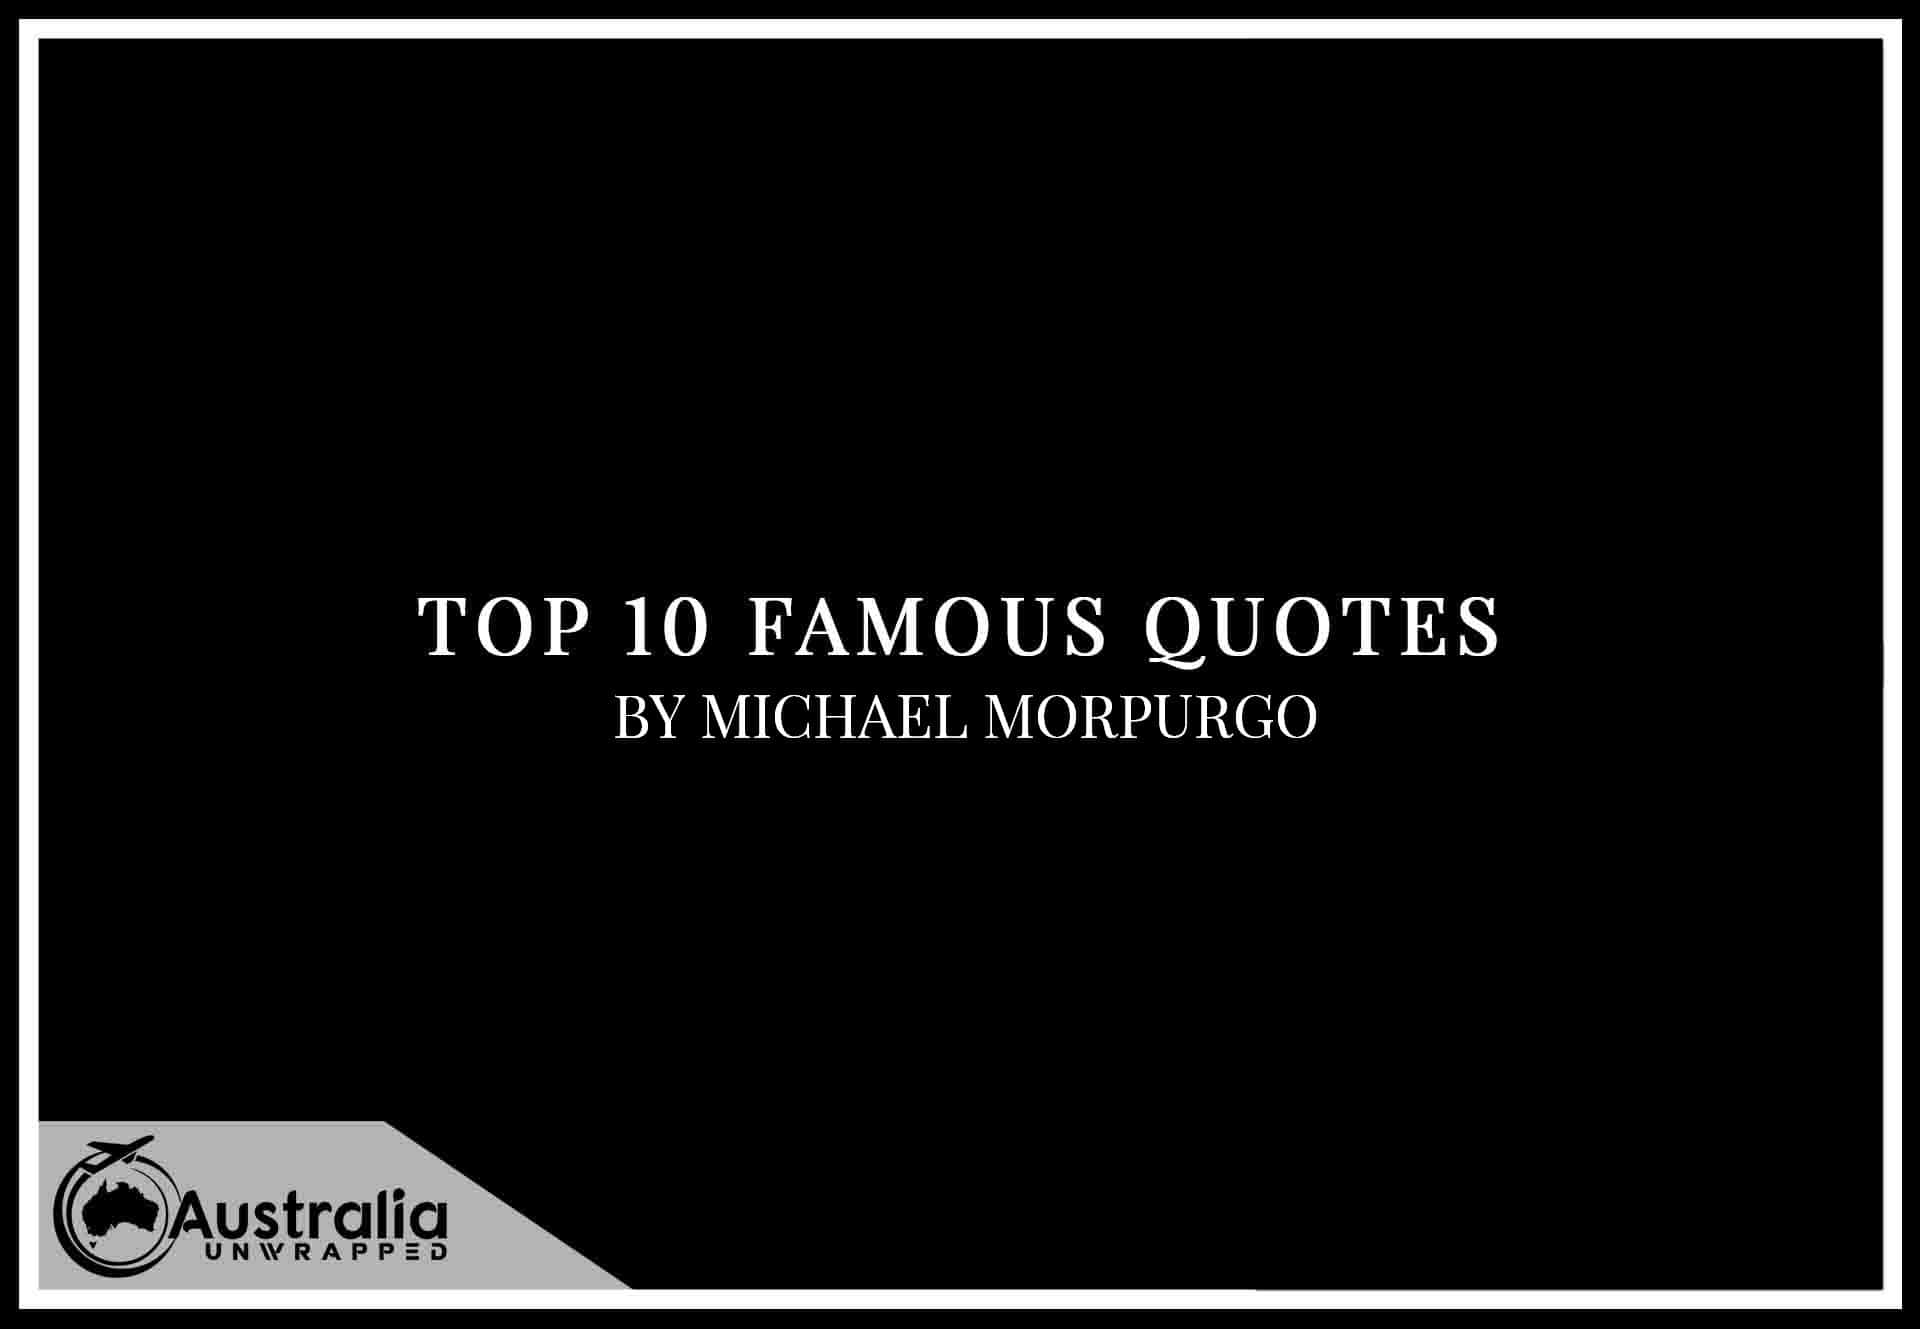 Top 10 Famous Quotes by Author Michael Morpurgo